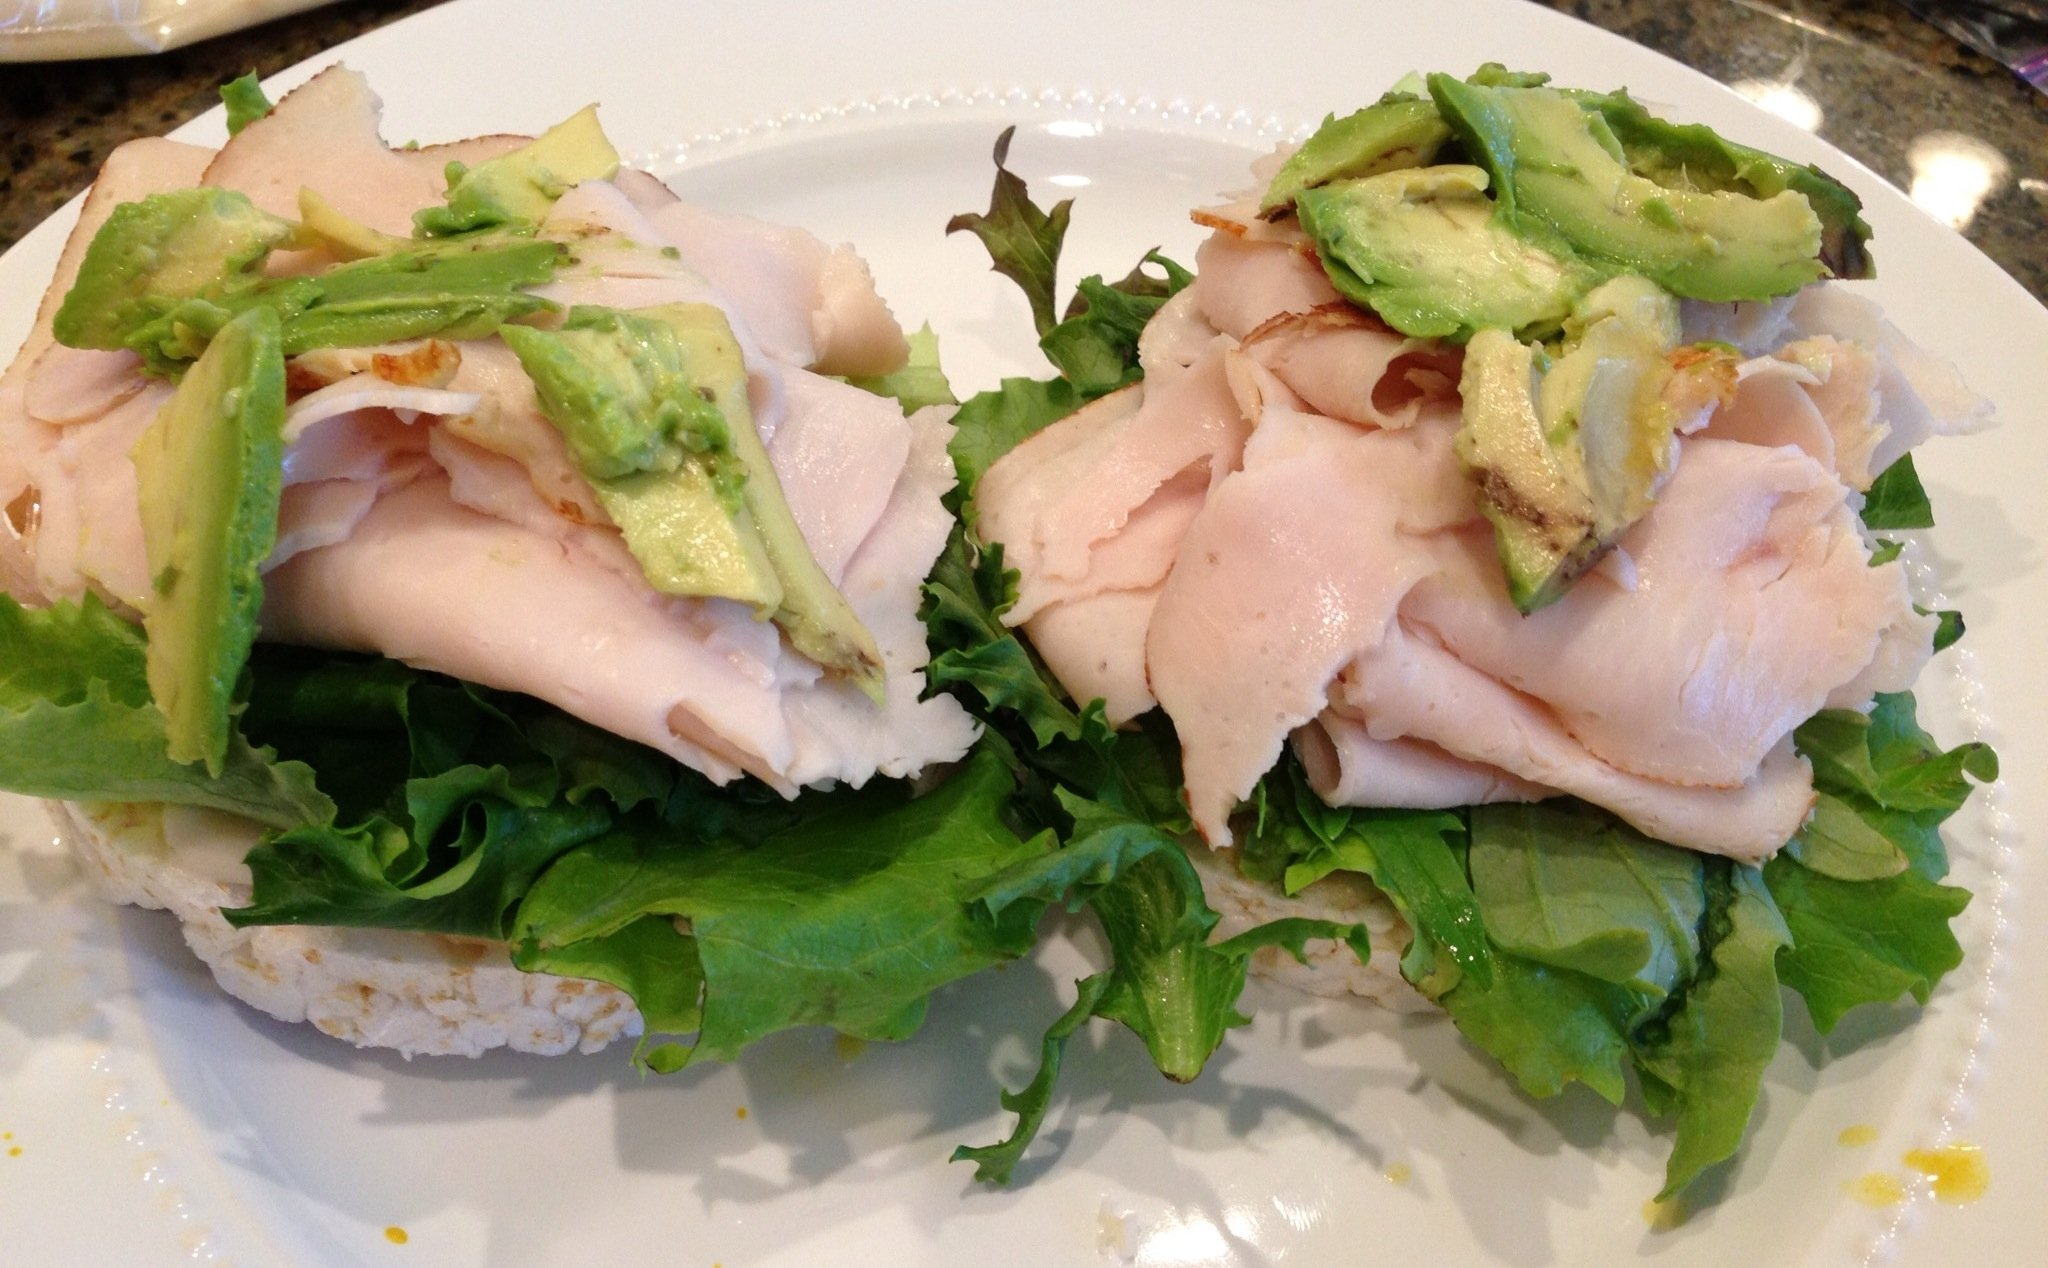 Open faced Lower Carb Turkeywiches - Get the recipe at https://heidipowell.net/2239